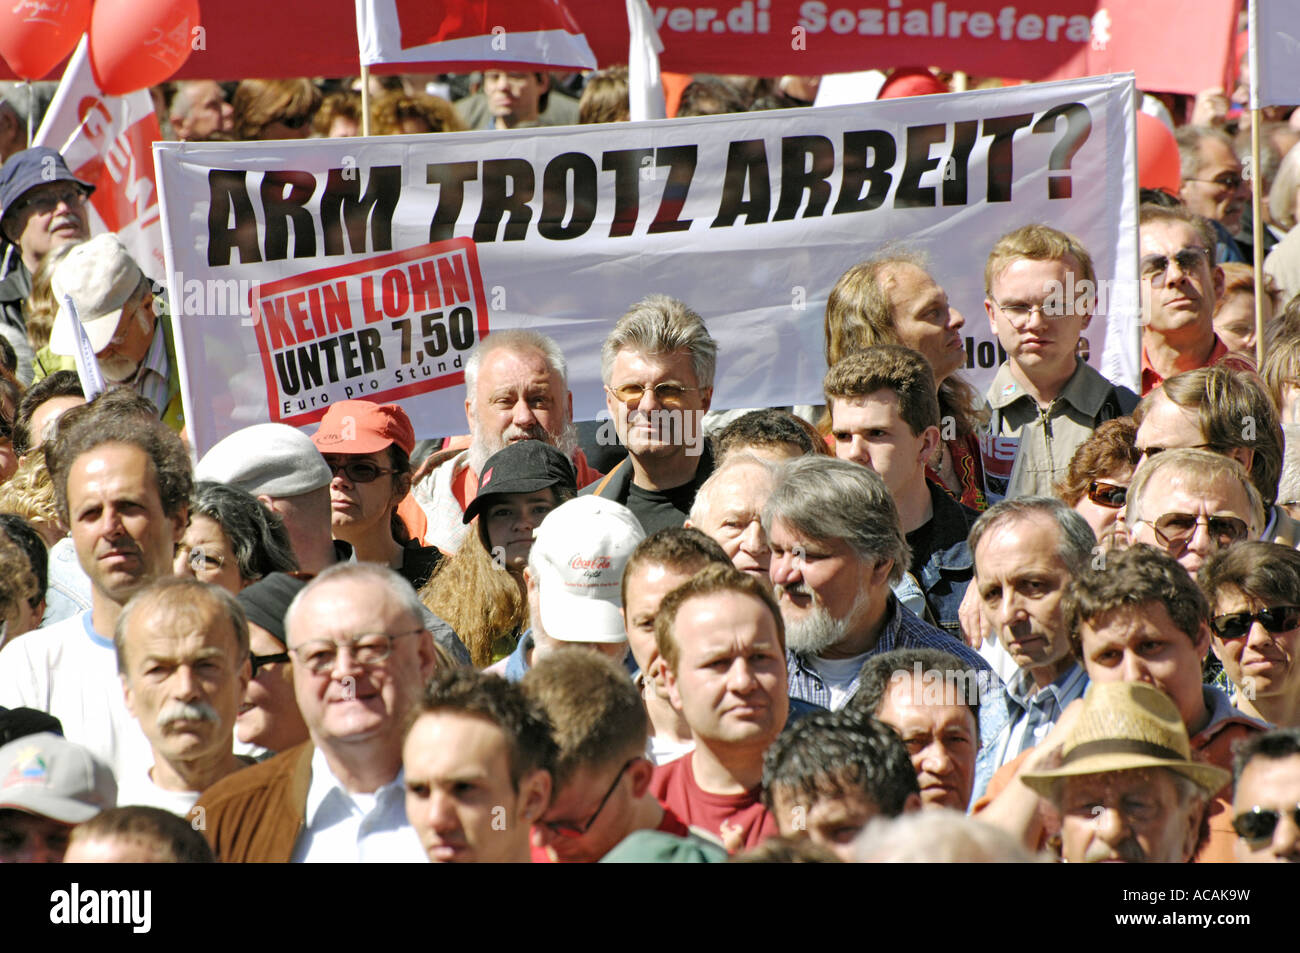 Transparant 'Poor in spite of work? No wage below 7.50 Euro per hour.' 1. Mai - Trade Union - DGB demonstration. - Stock Image